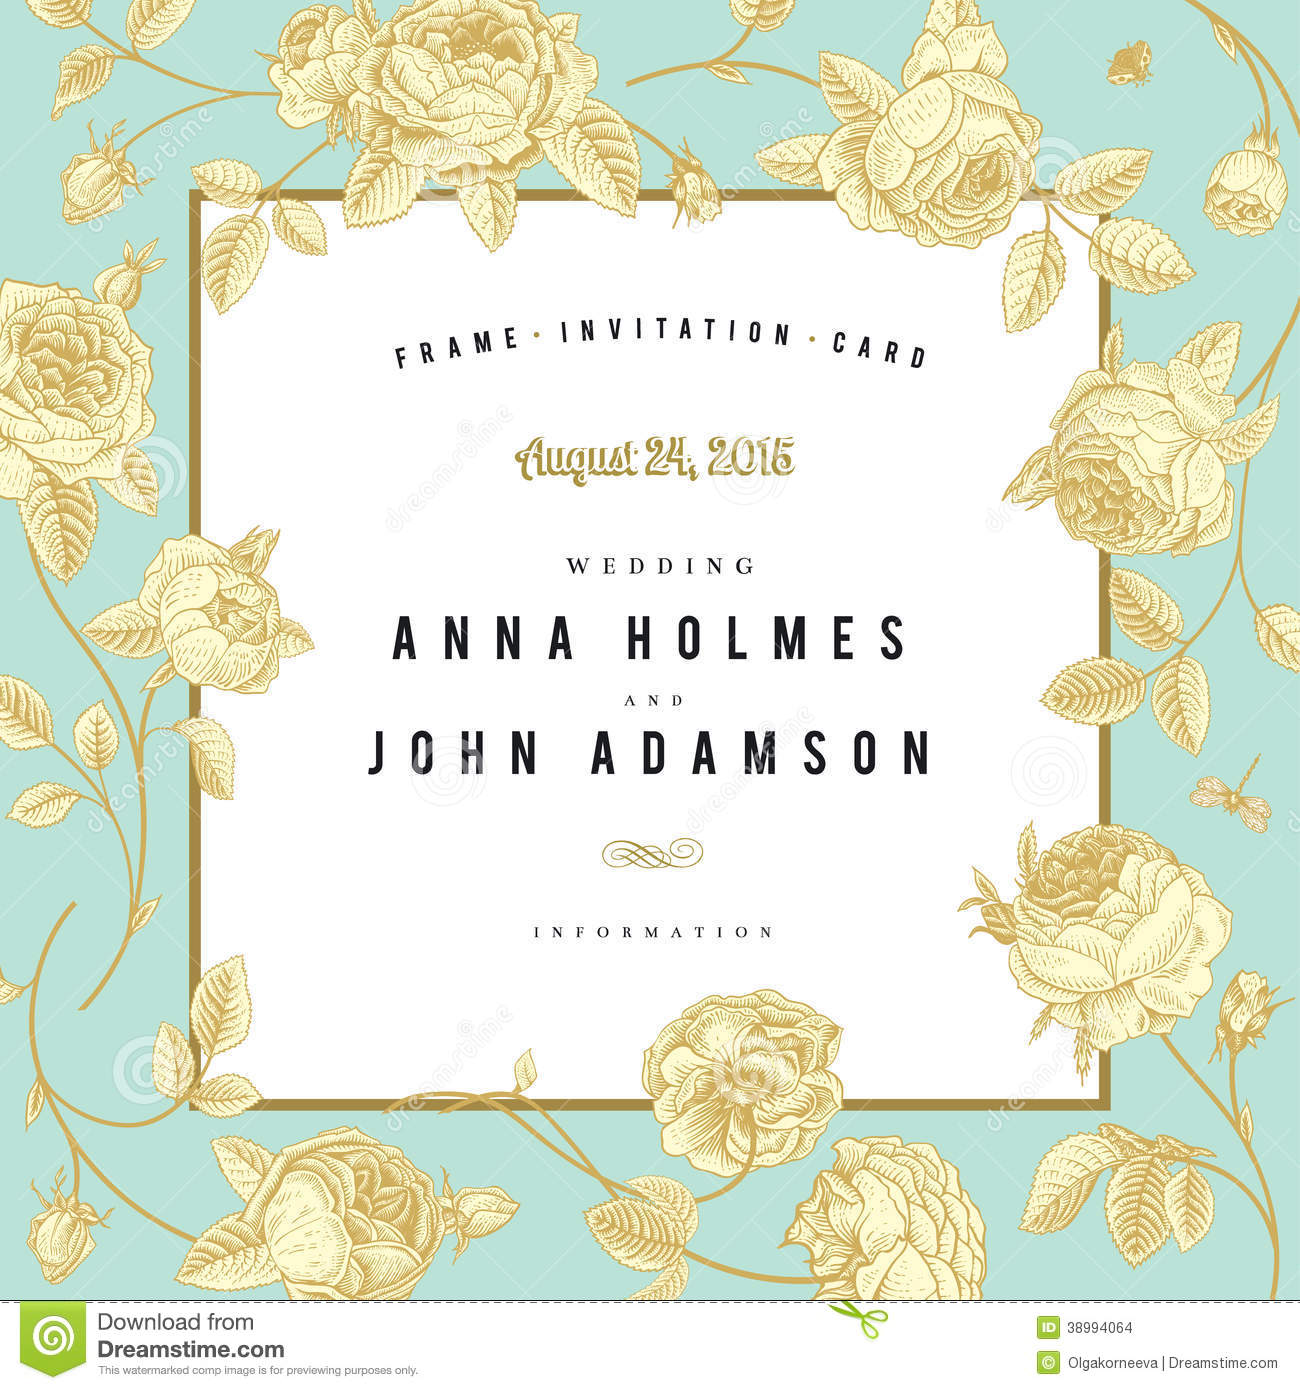 Invitation Cards For Wedding Anniversary with amazing invitation template